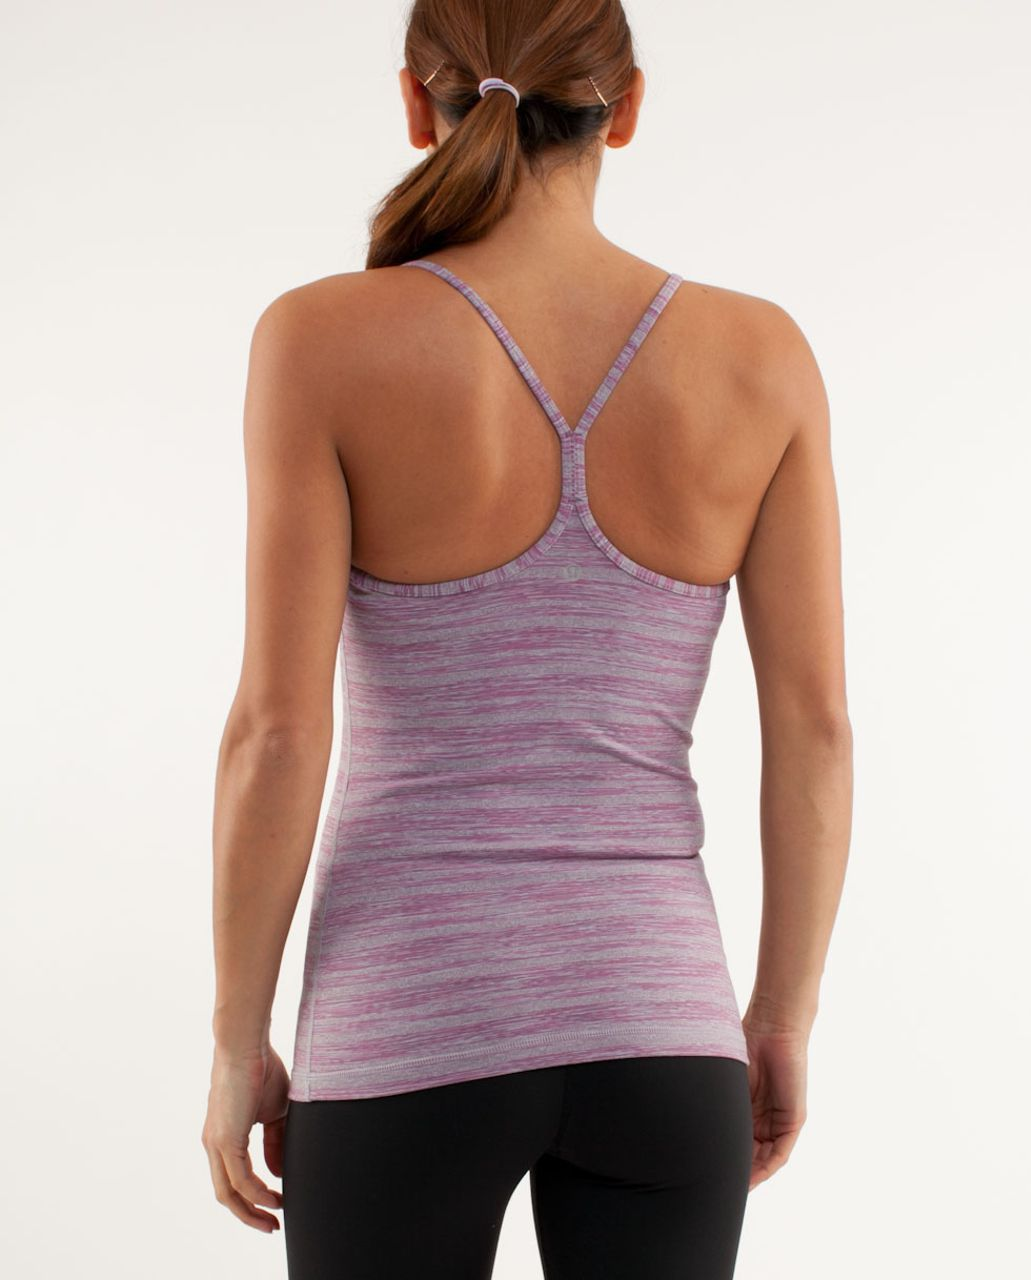 Lululemon Power Y Tank - Muted Mauve Stripes Galore